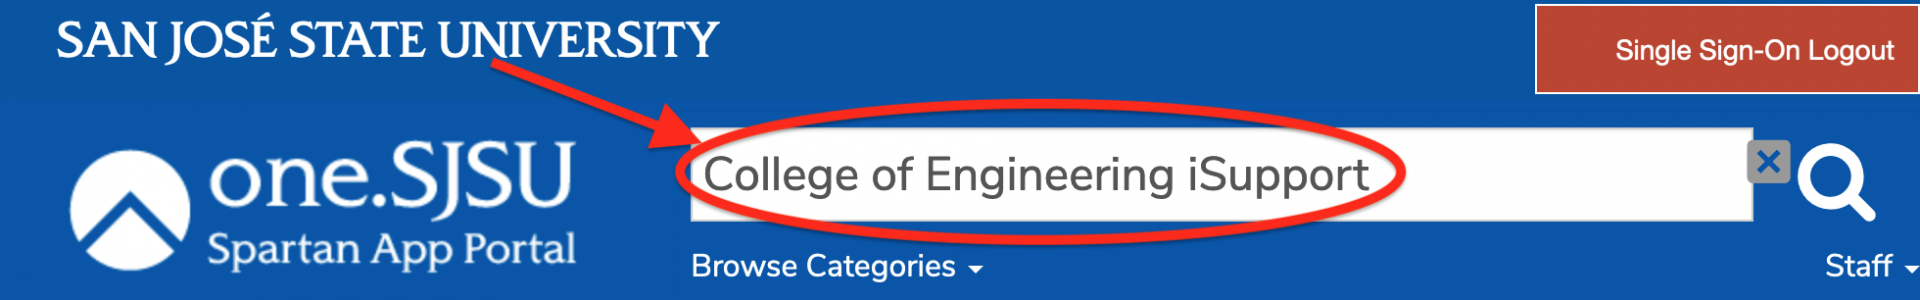 enter College of Engineering iSupport in the search box.